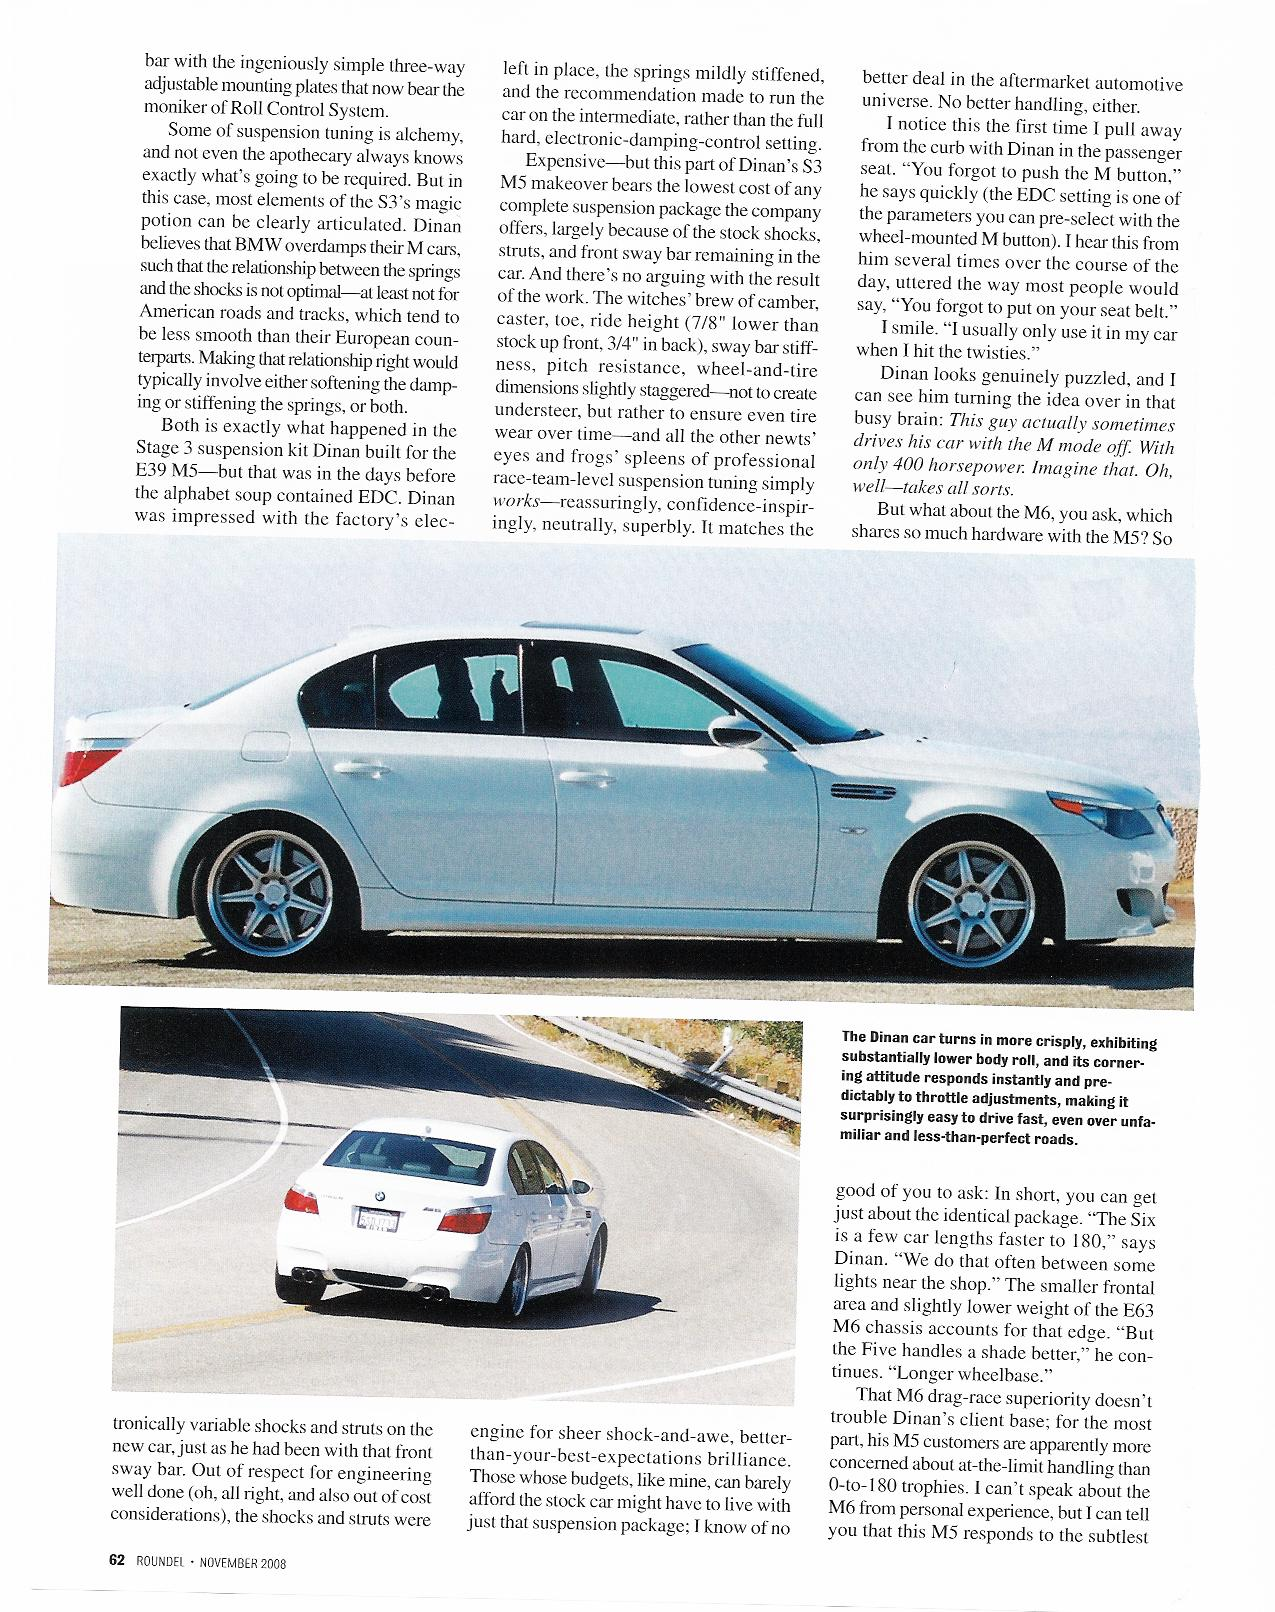 Stock E60 M5 owner evaluates Dinan S3 (Roundel Article)-roundel-article-dinan-e60-m5-s3-005.jpg